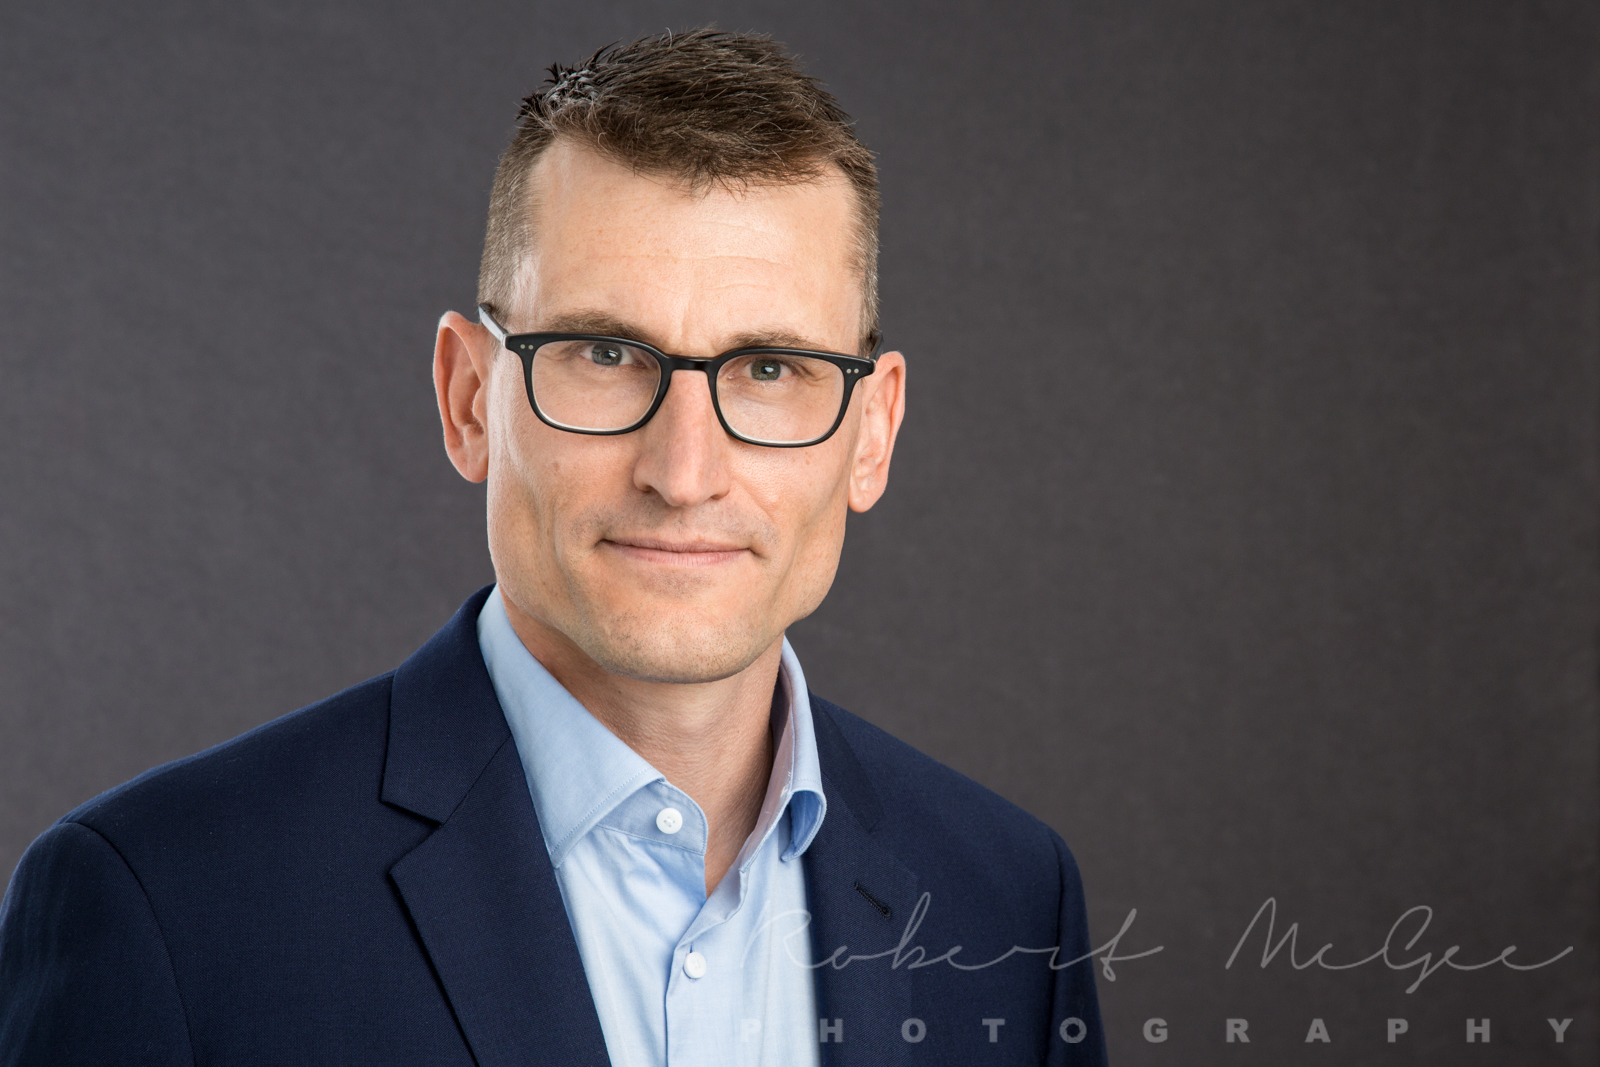 Steve in navy blue business suit against grey backdrop for Toronto professional headshot 0O7C0502